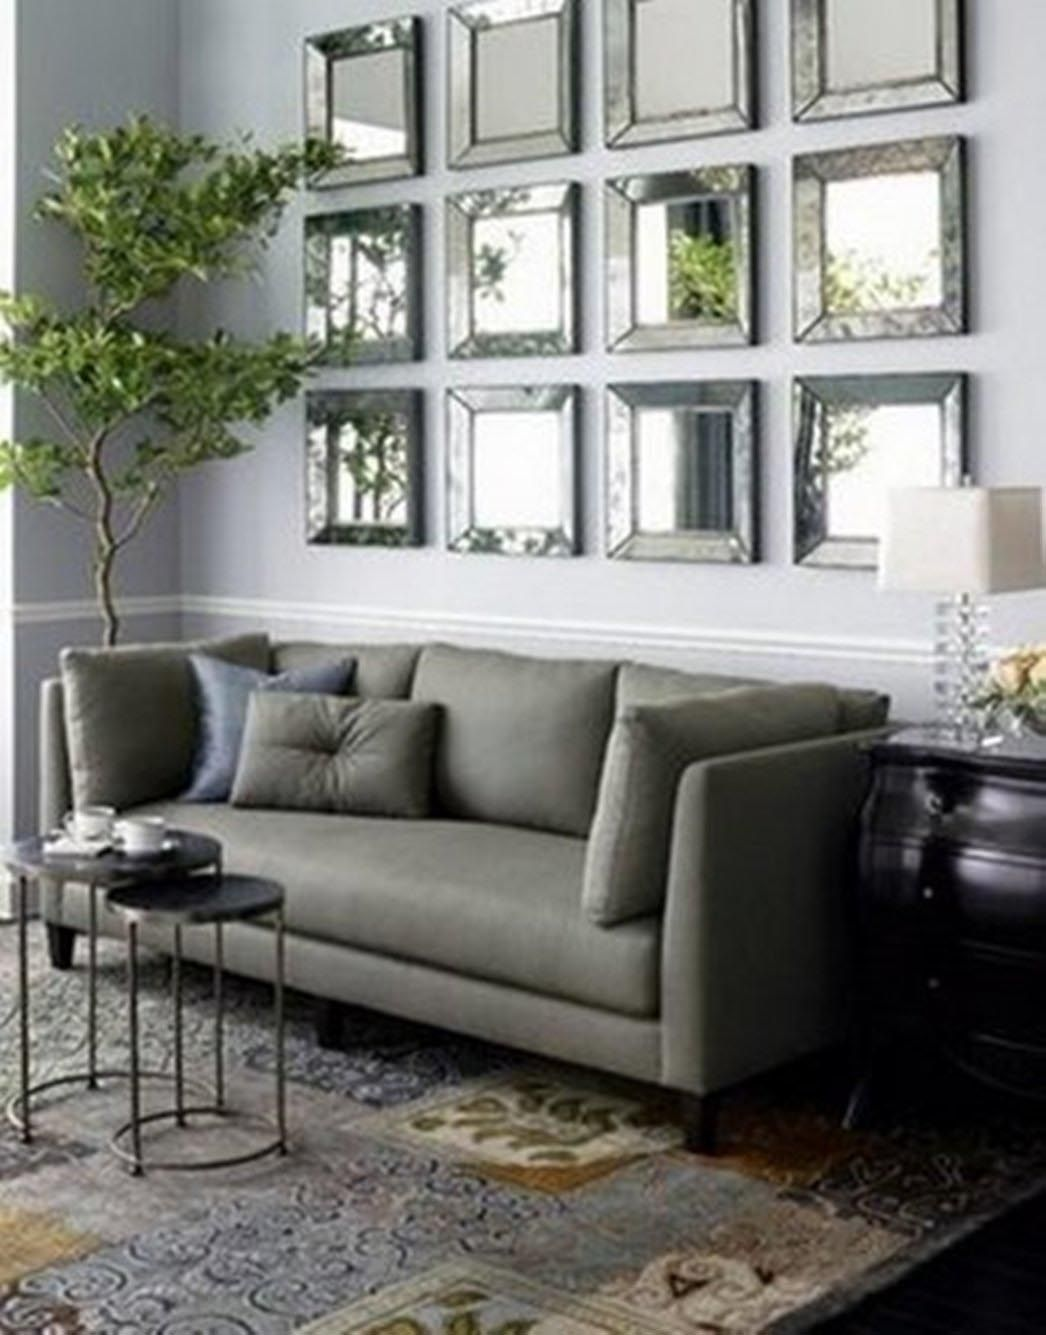 Modern Wall Mirrors for Living Room | Living room mirrors ...